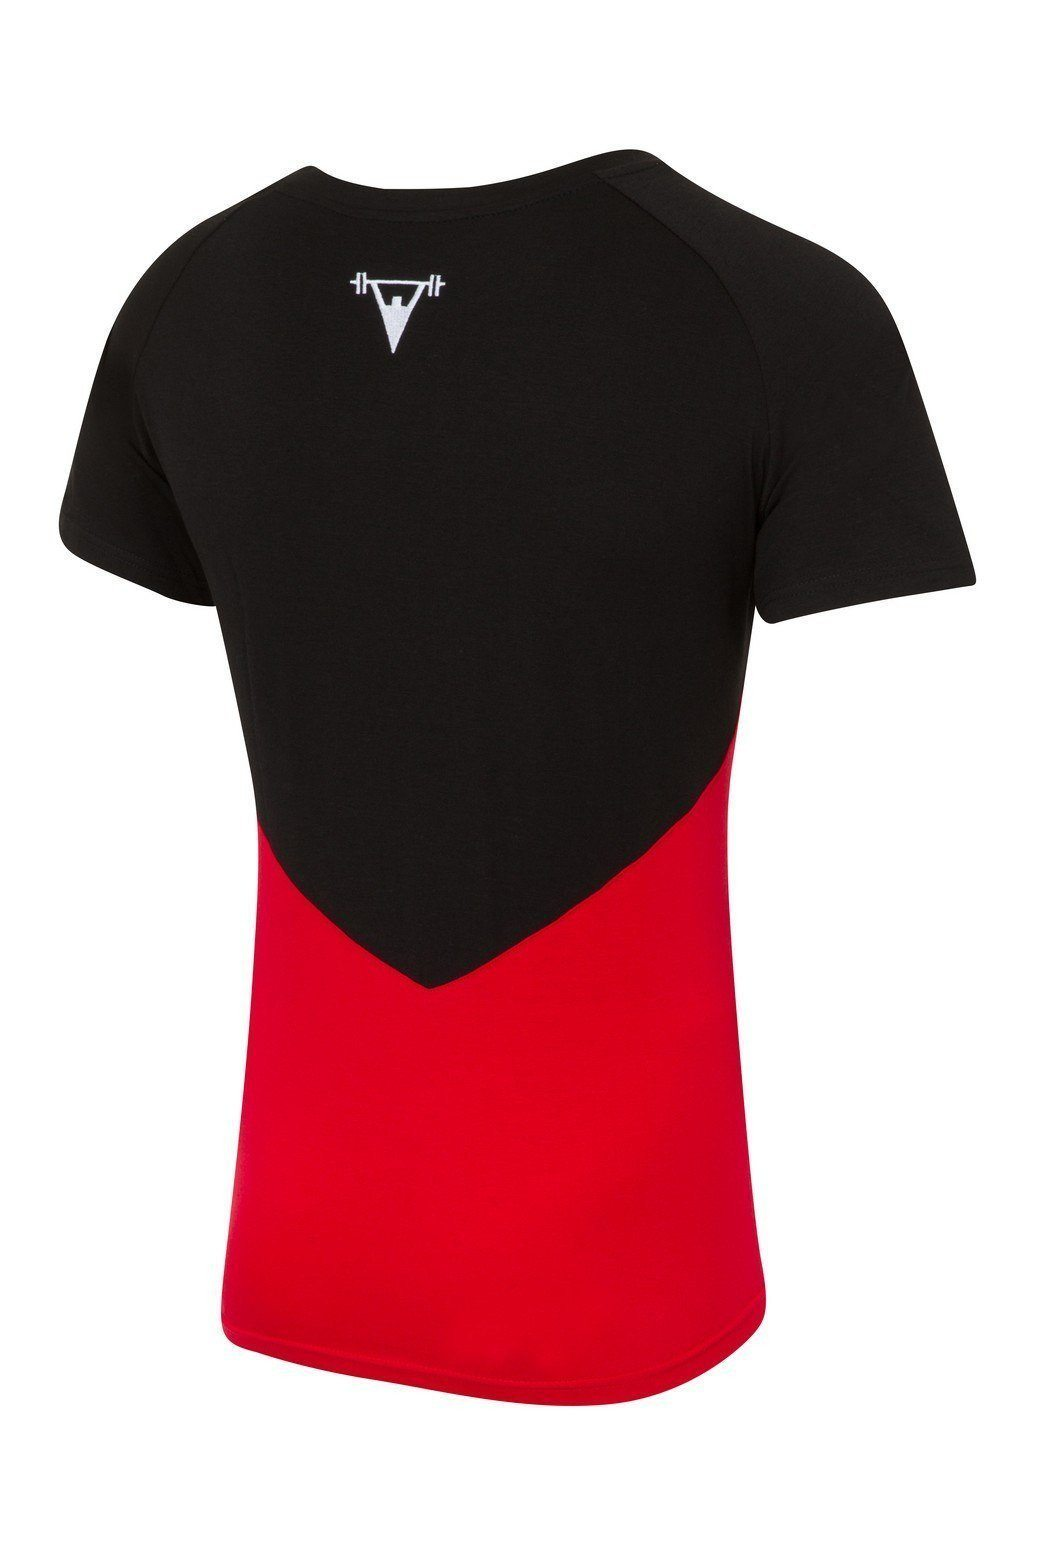 8d06ed31e45 Cut Above  Kontrast  T-Shirt in Black Red - Cut Above Clothing